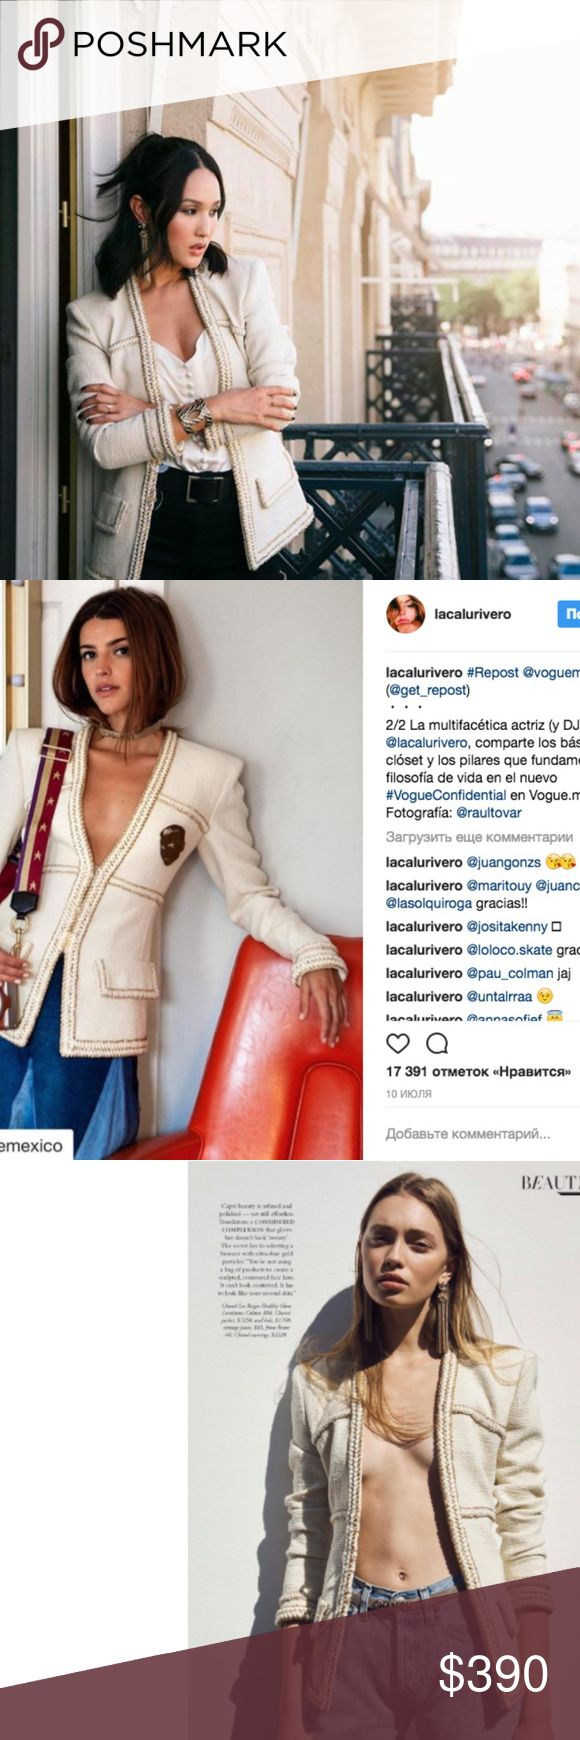 Chanel Jacket As seen on HARPER'S BAZAAR June 2017, Vogue Mexico and fashion blogger Nikole Warne. Latest Paris Cosmopolite collection. Boutique cost $7250. Inspired version, don't miss a chance to get haute couture look for less. Price is not firm, best offer will be accepted Exprected to arrive today, listing will be updated CHANEL Jackets & Coats Blazers